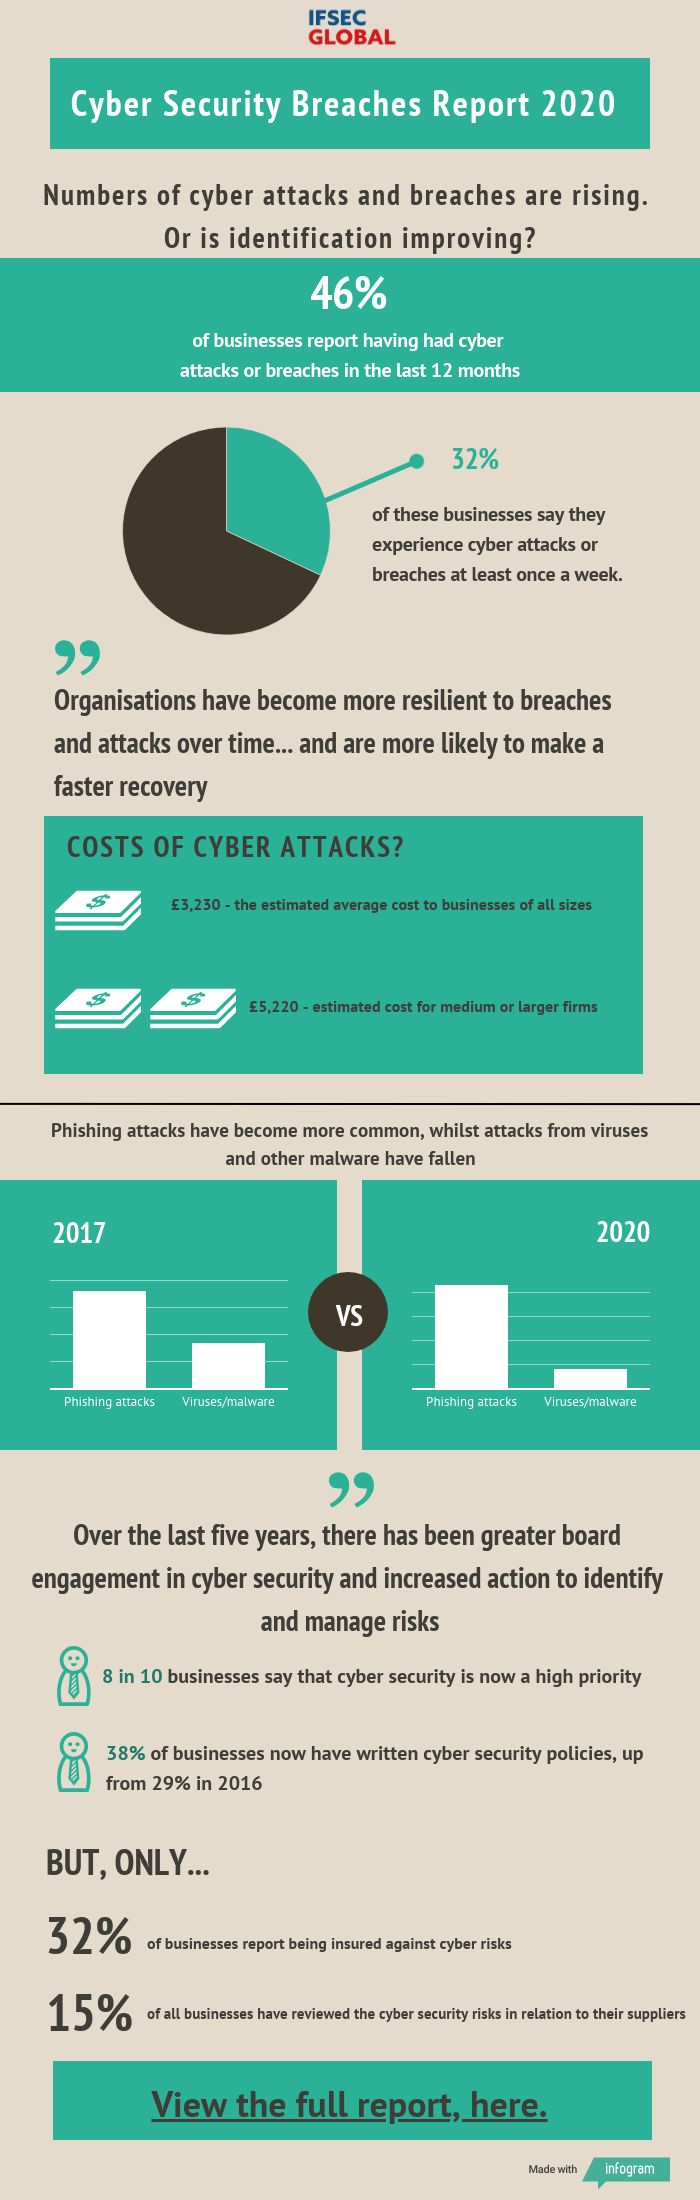 cyber-security-breaches-report-2020-Infographic